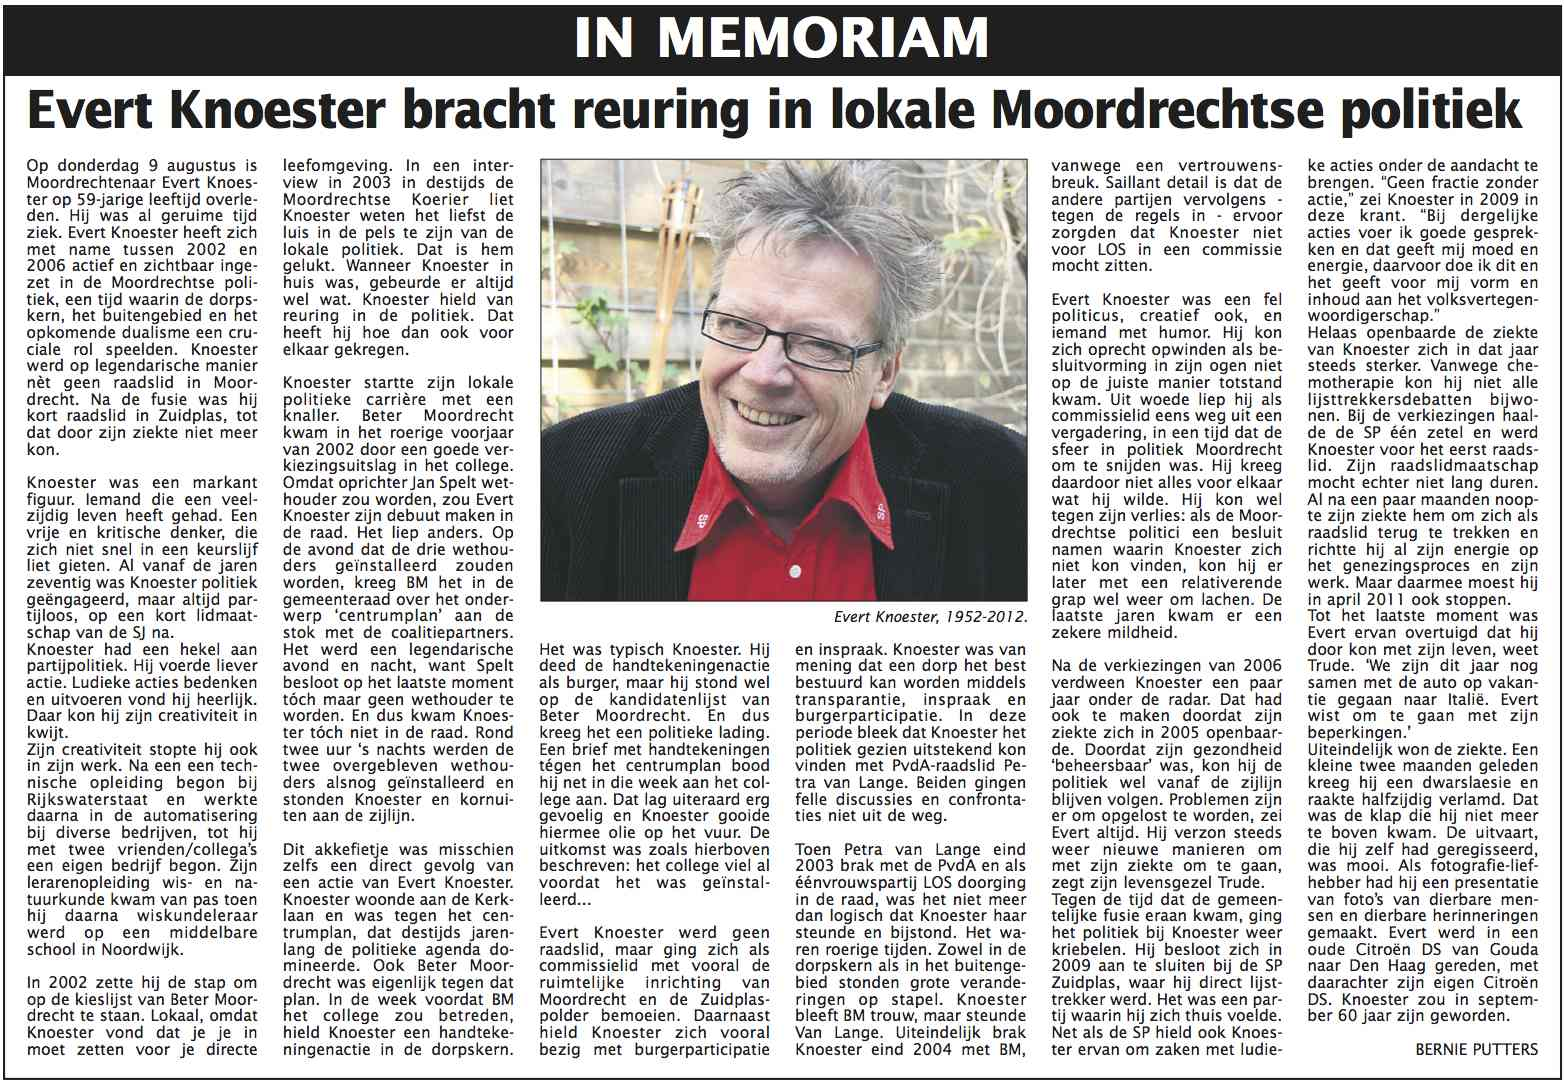 In Memoriam: Evert Knoester